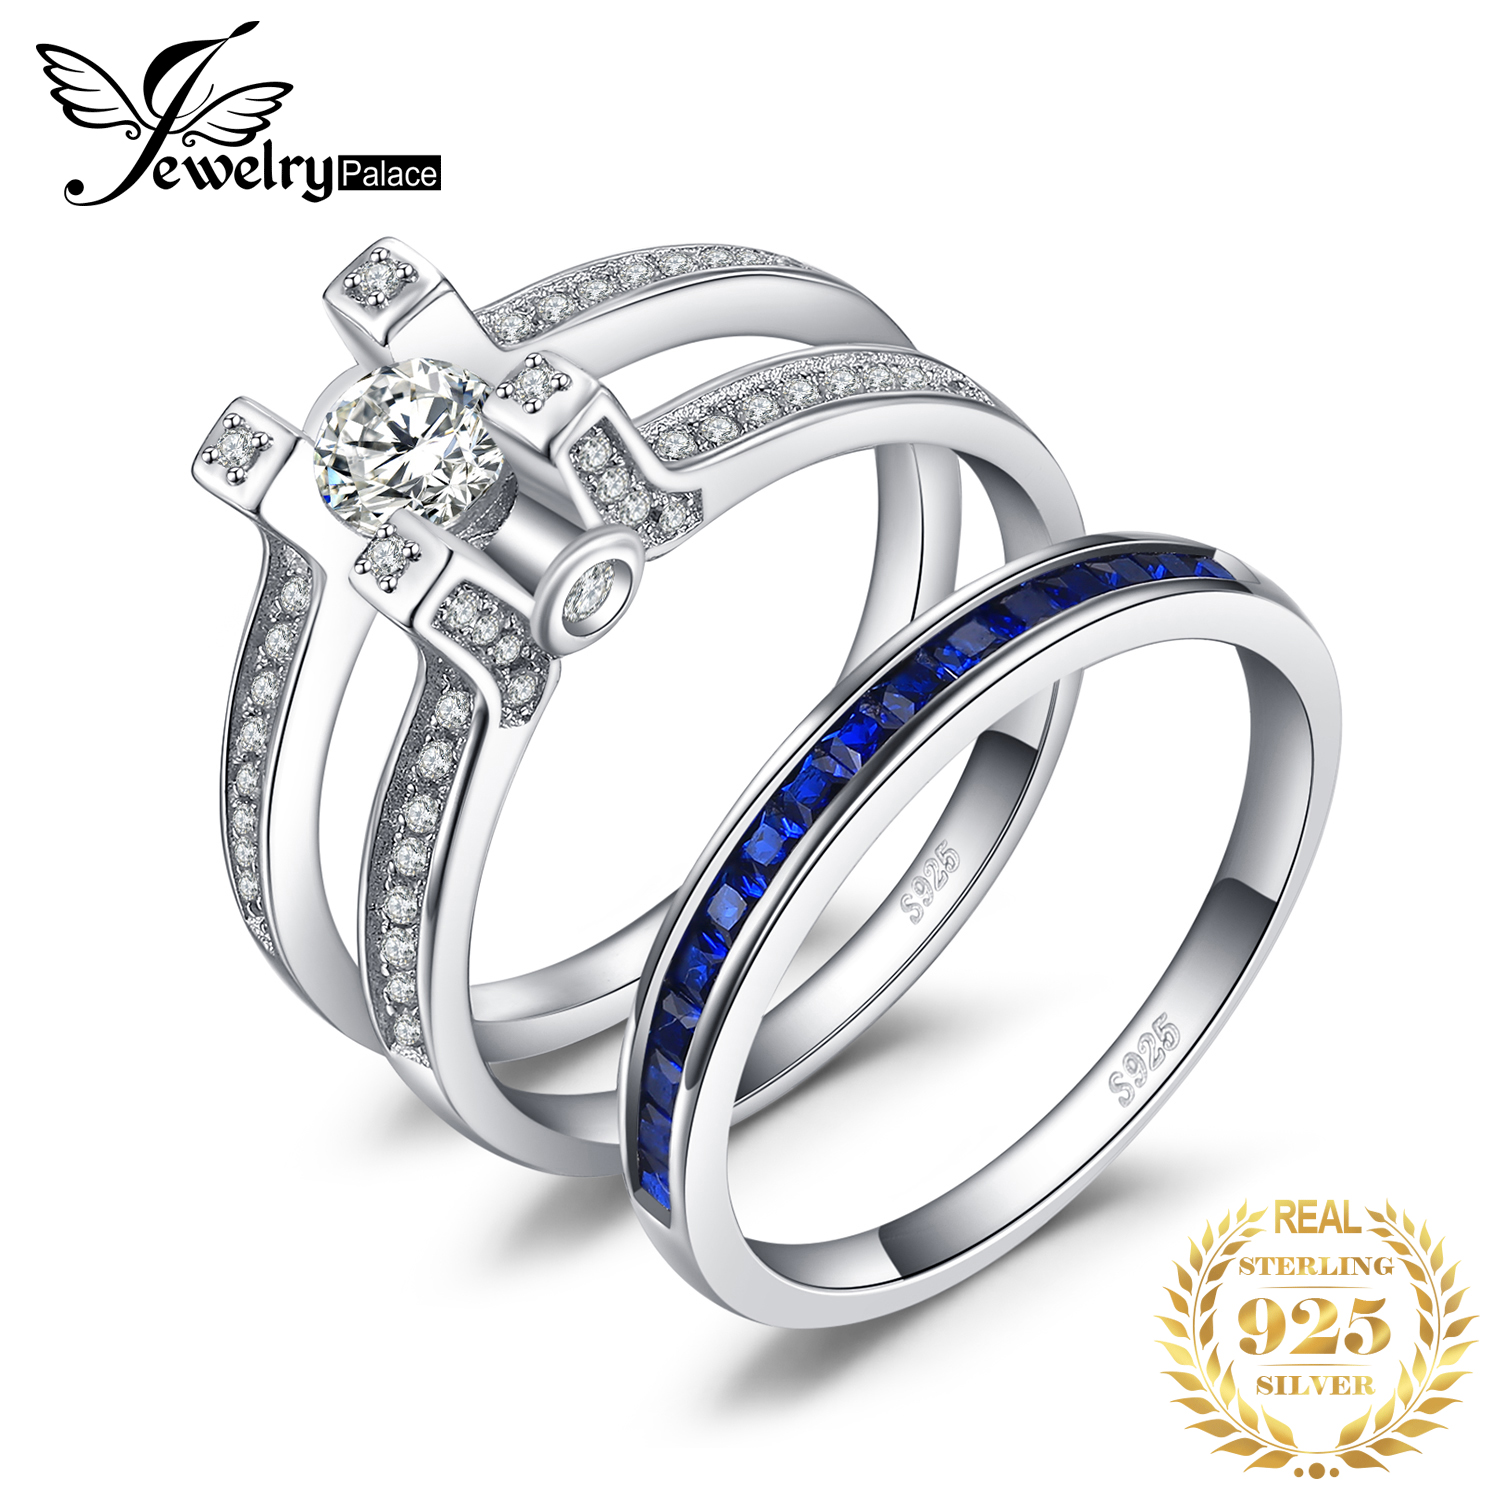 JPalace Created Sapphire CZ Engagement Ring 925 Sterling Silver Rings For Women Wedding Rings Bridal Sets Silver 925 Jewelry